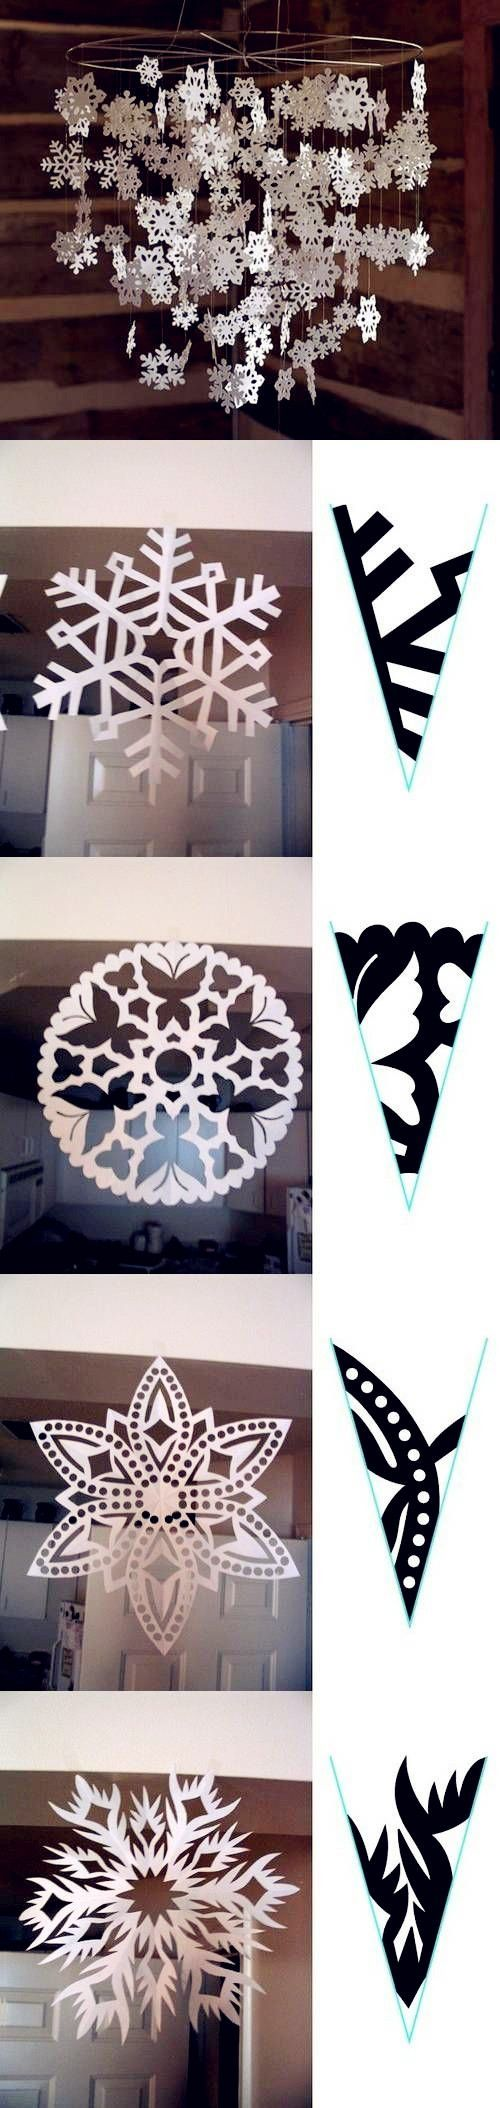 Snowflake Paper Patterns DIY Christmas <3